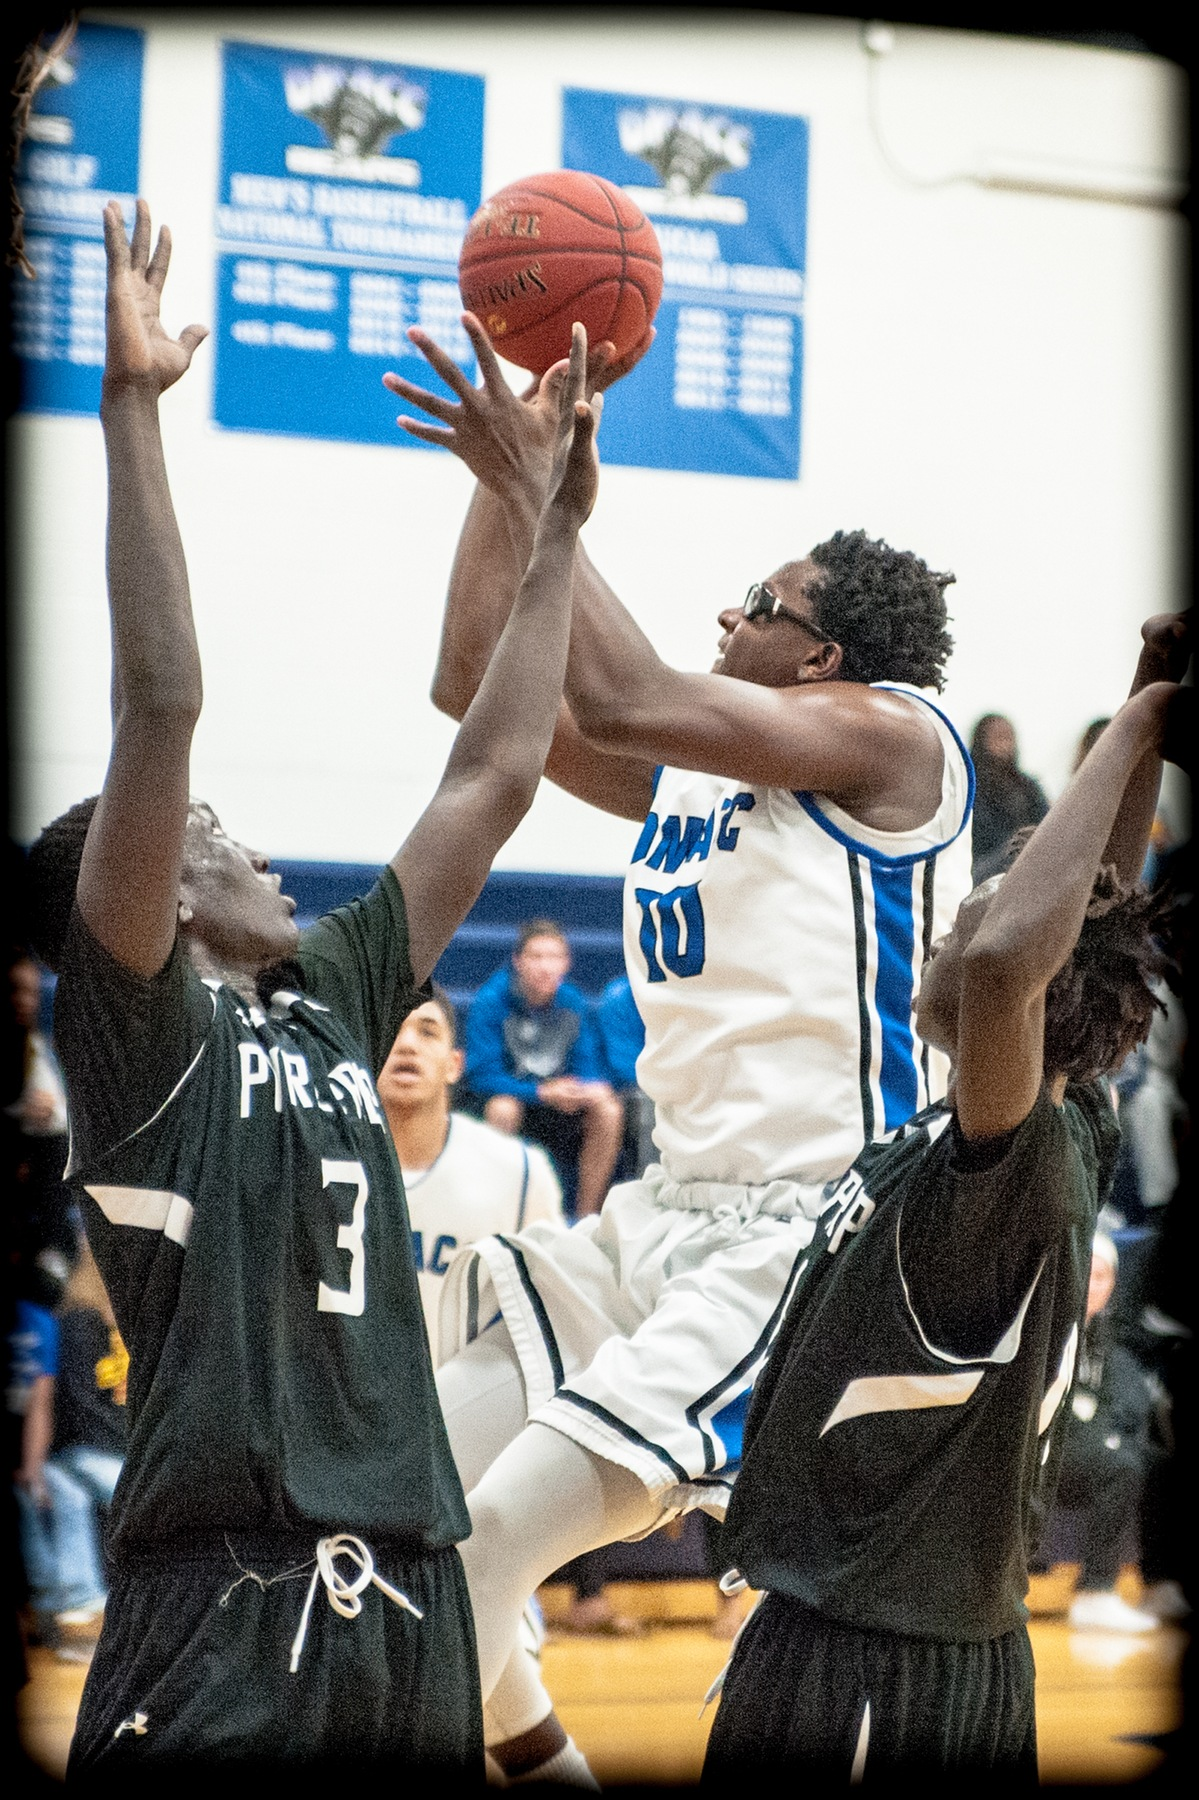 DMACC Men's Basketball Team Gets Wins in its First Two Games